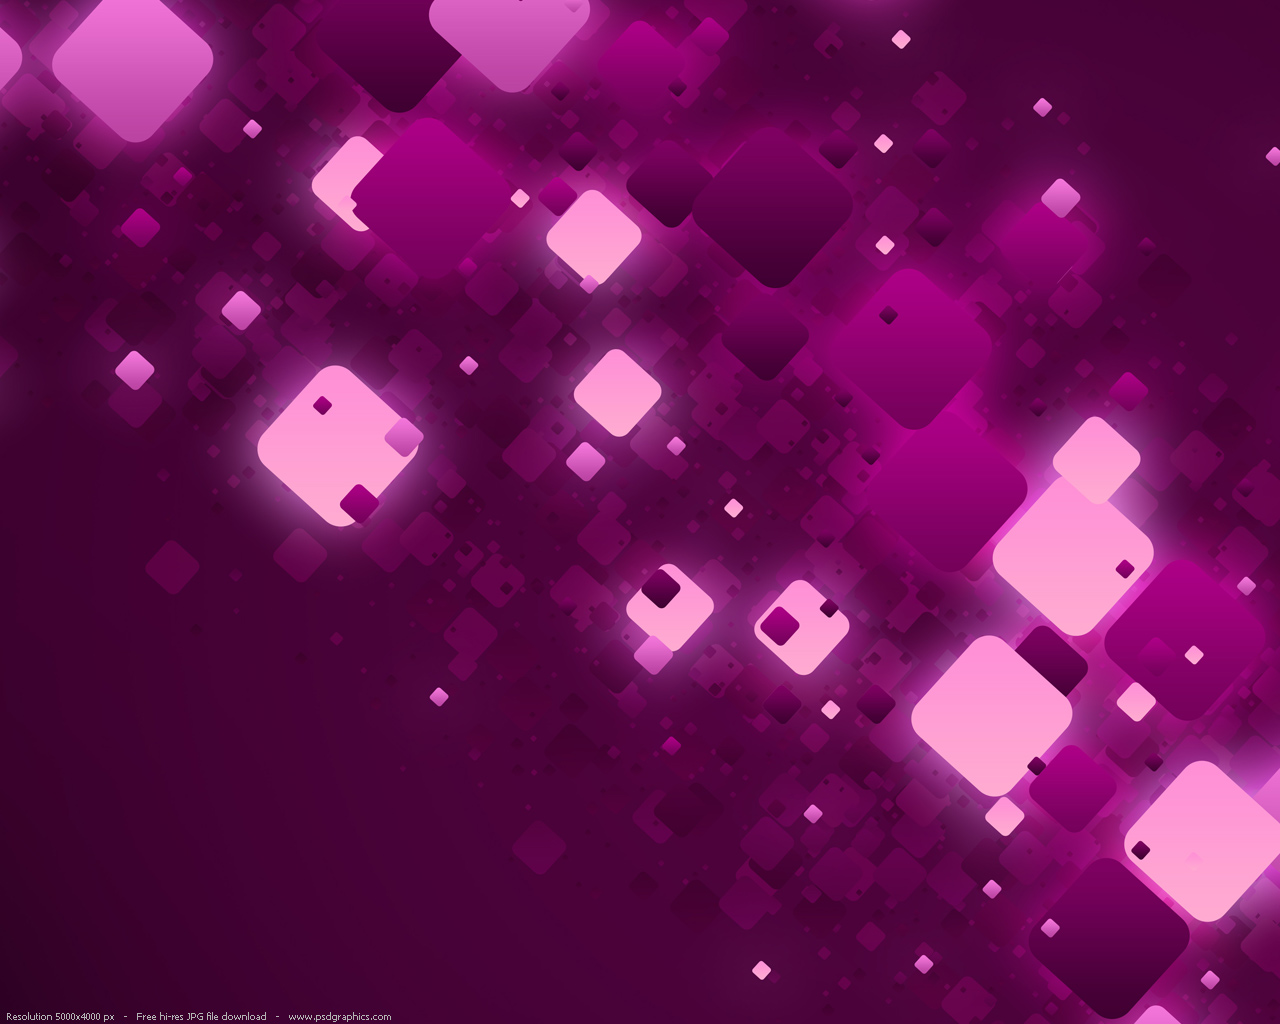 Light Purple Abstract Wallpaper Hq Backgrounds For